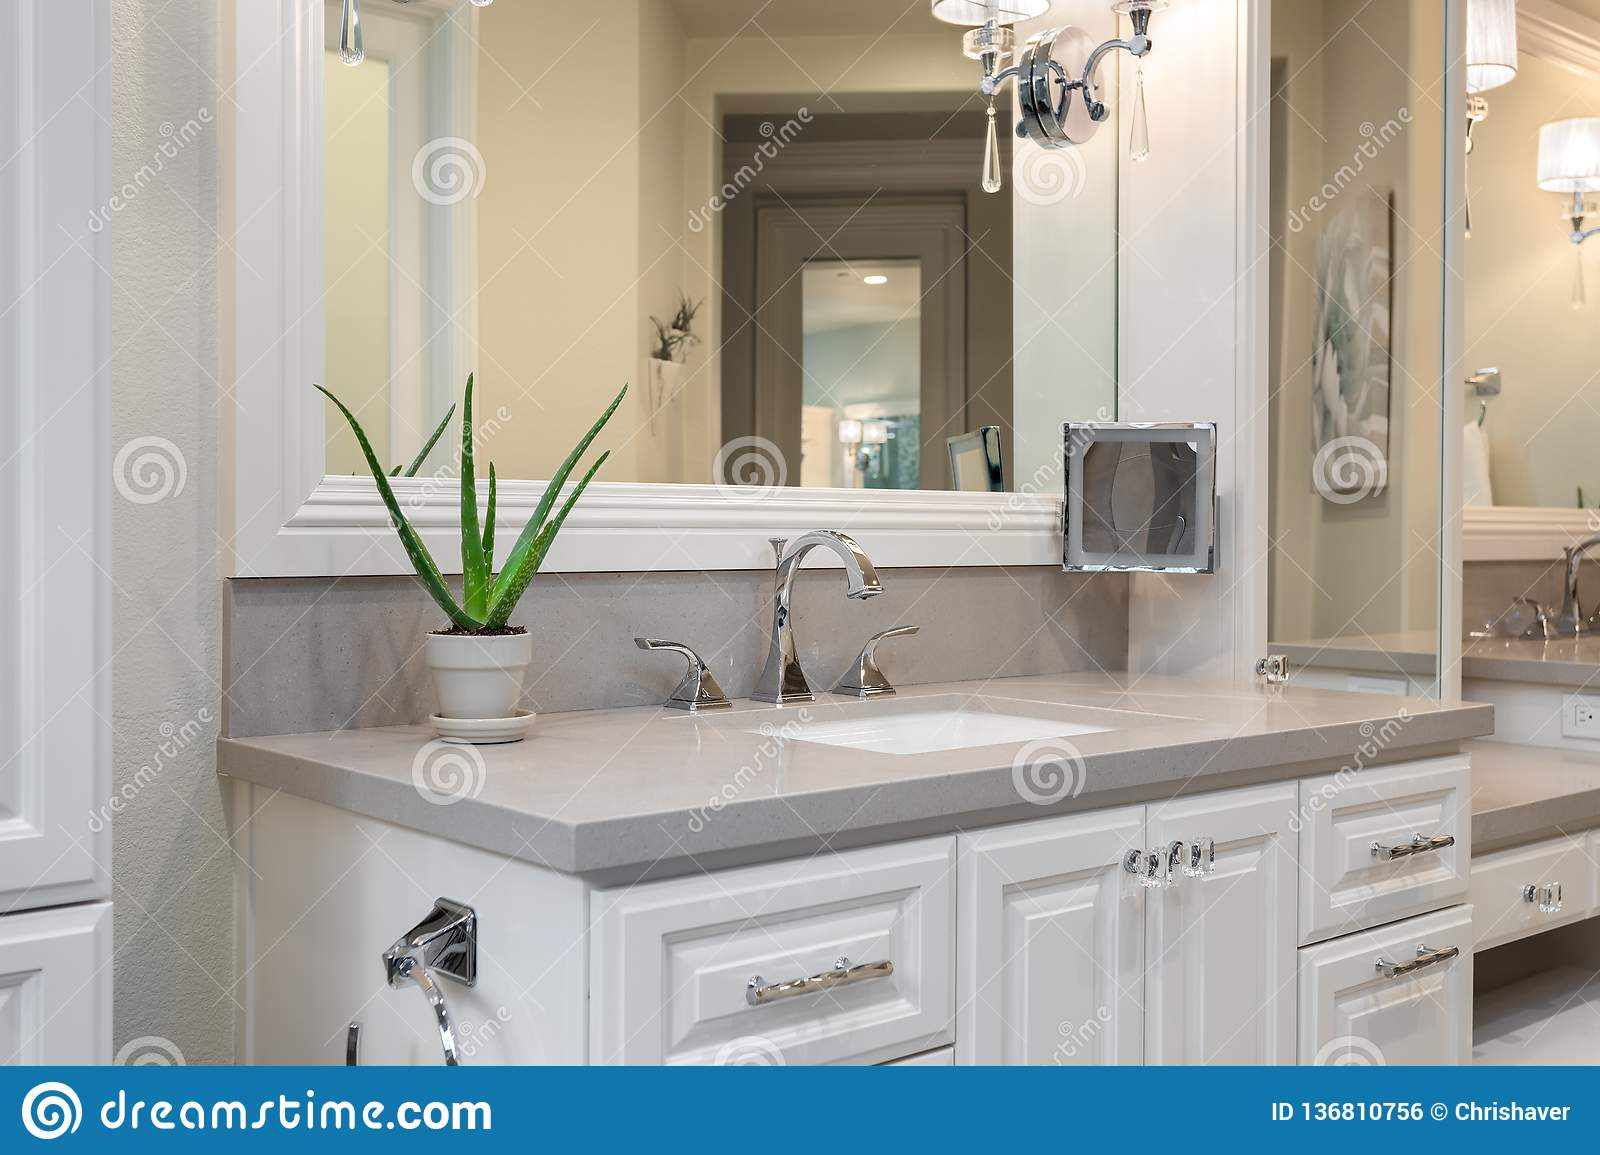 Modern Home Design Bathroom Vanity Home Interiors Editorial Photo Image Of Cabinets Architecture 136810756